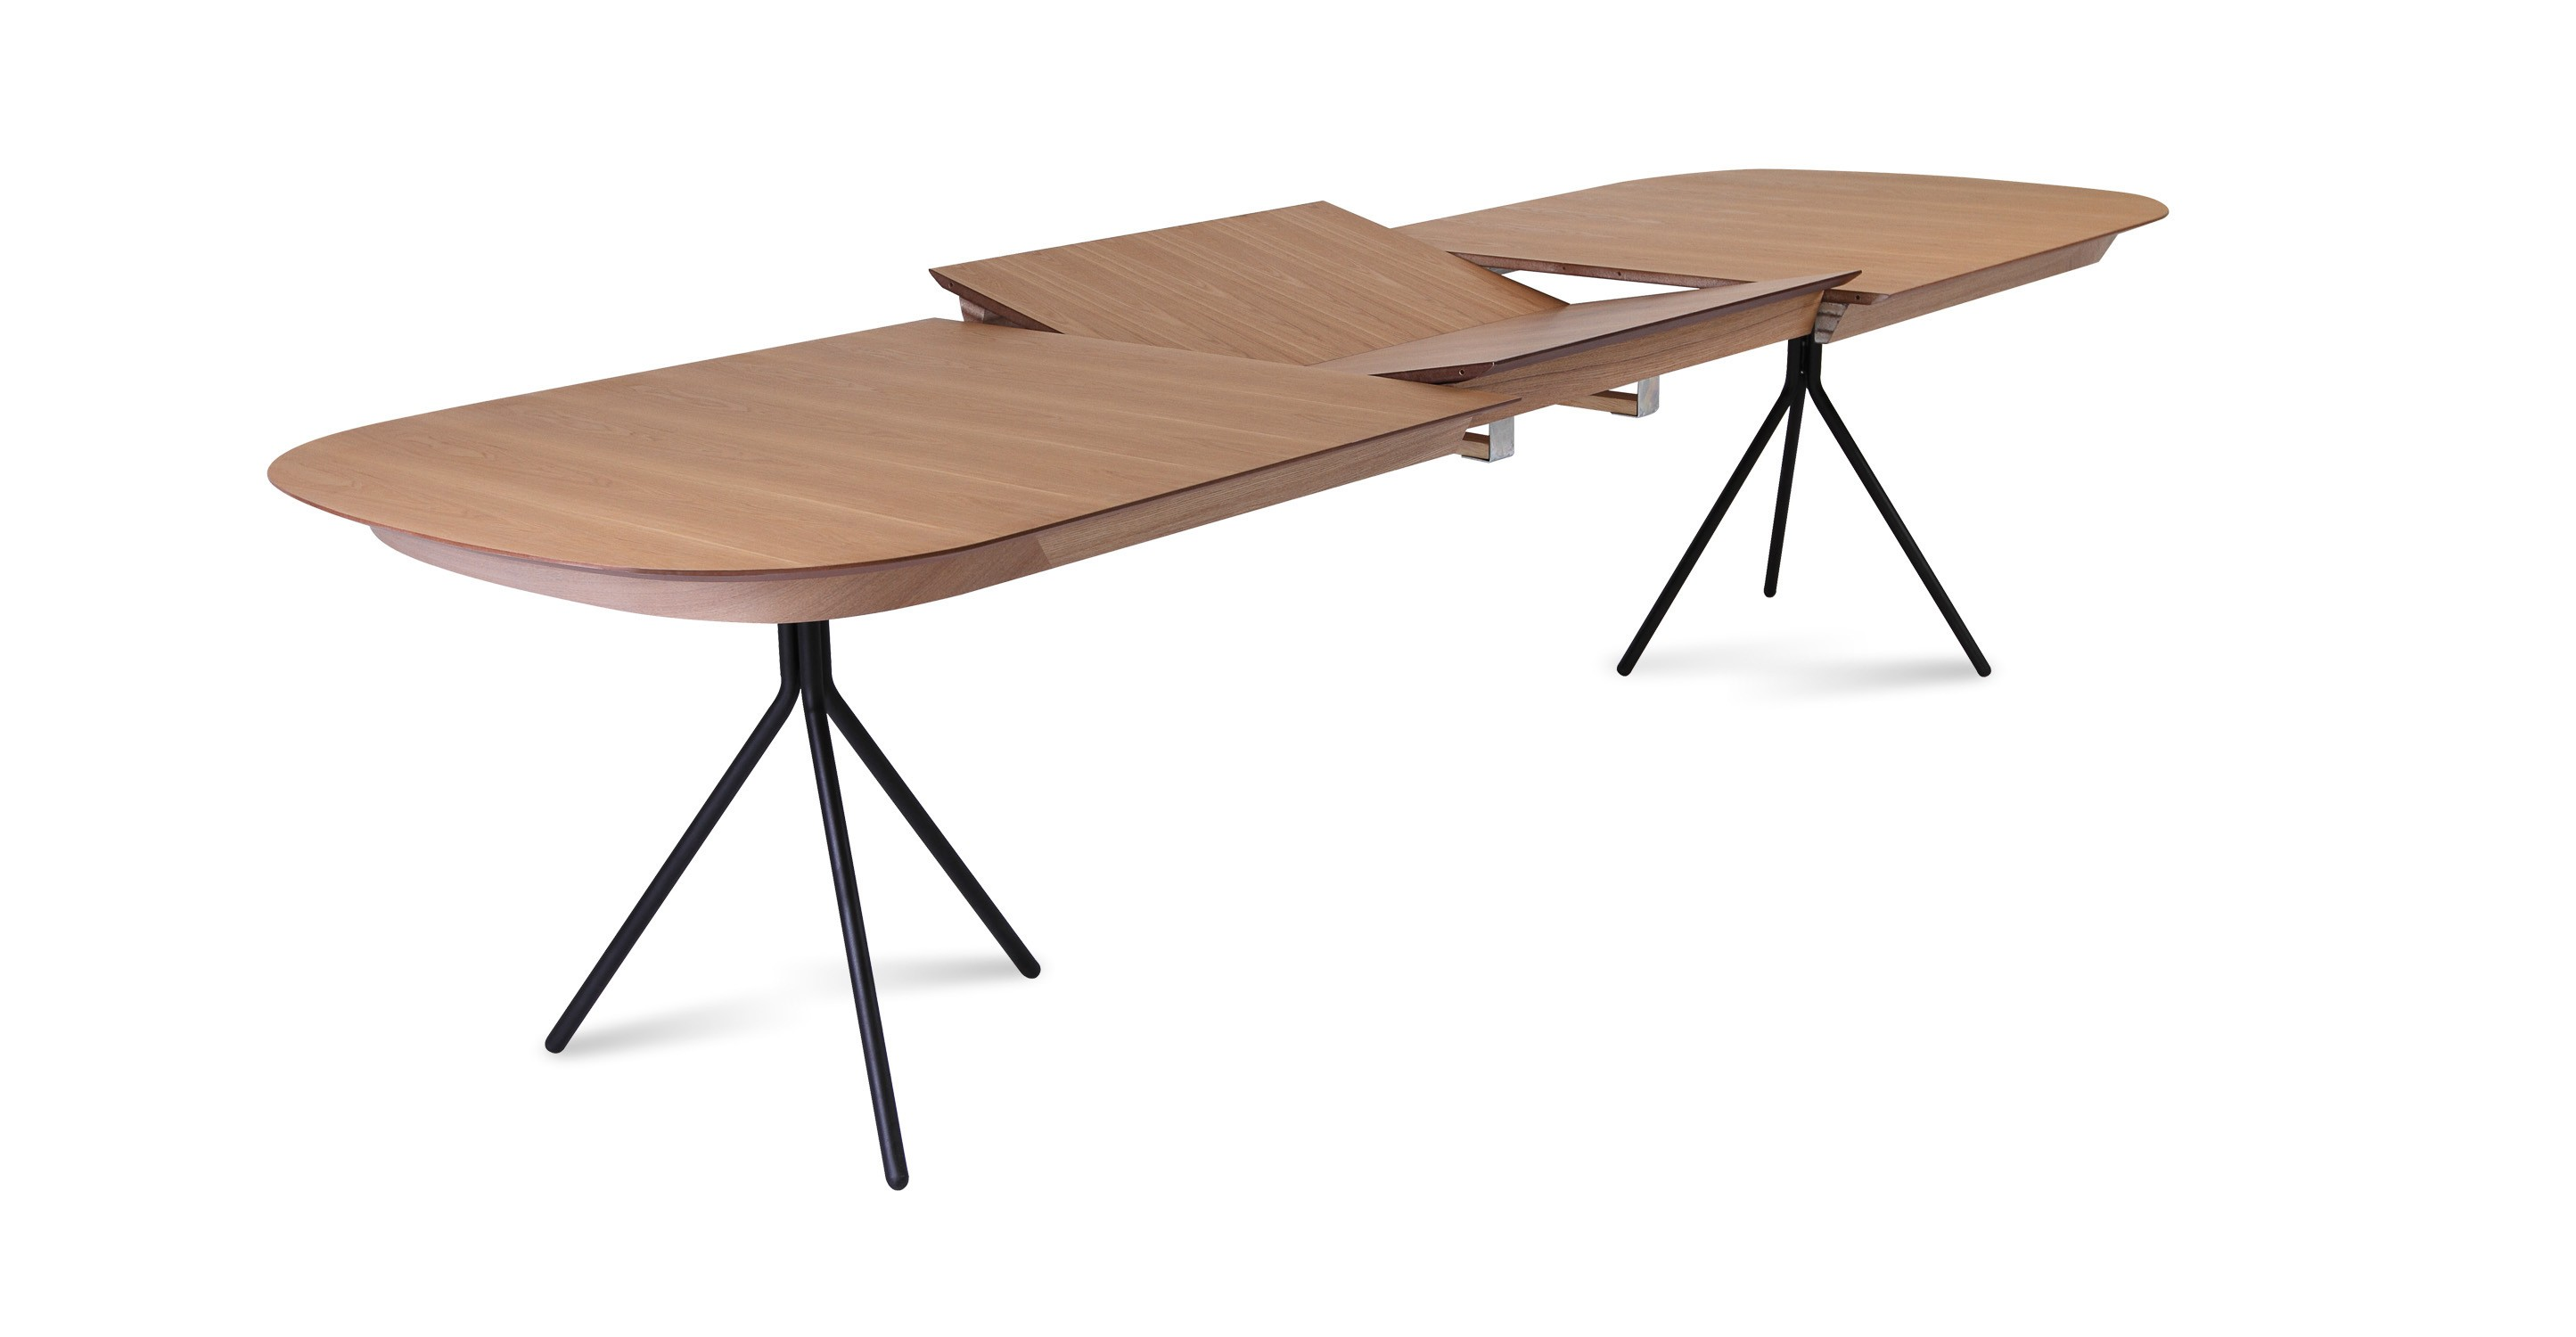 Otto Expandable Dining Table Tables Article Modern  : image9675 from www.article.com size 2890 x 1500 jpeg 179kB